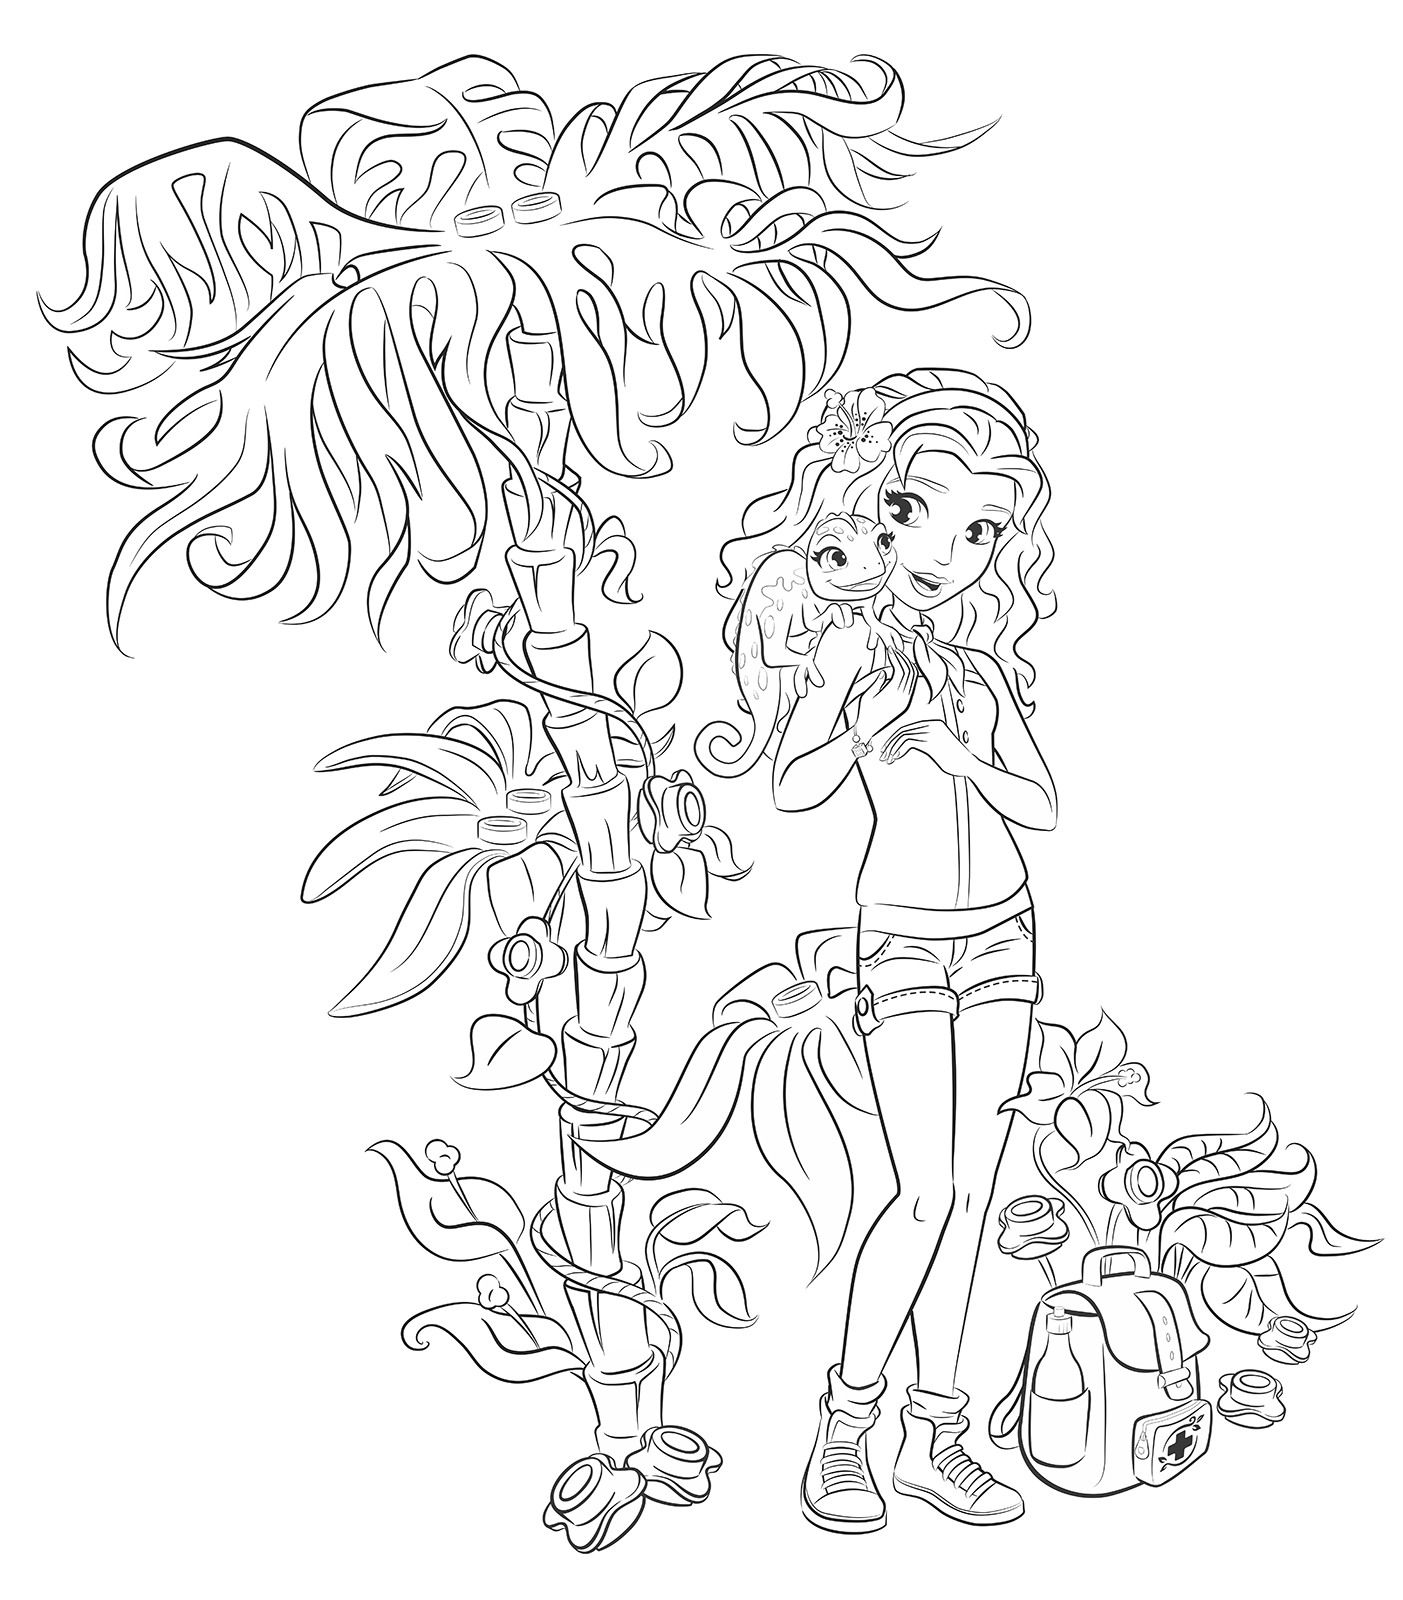 Lego Friends Printable Coloring Pages The Best Free Emma Coloring Page Images Download From 63 Free